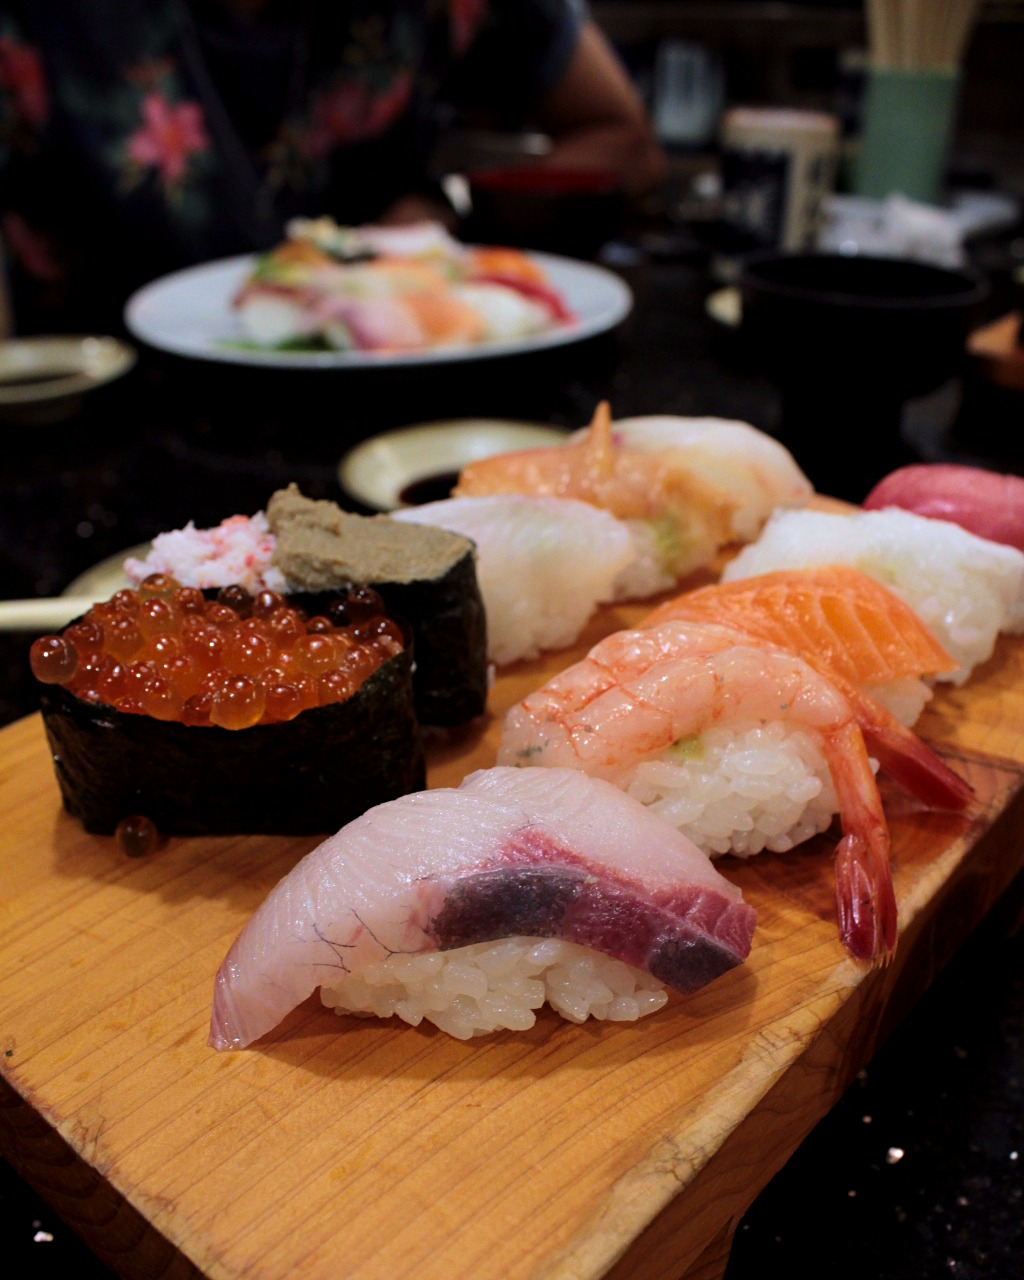 Nigiri sushi set from Ponta, one of the best unknown conveyor belt sushi restaurants in Kanazawa